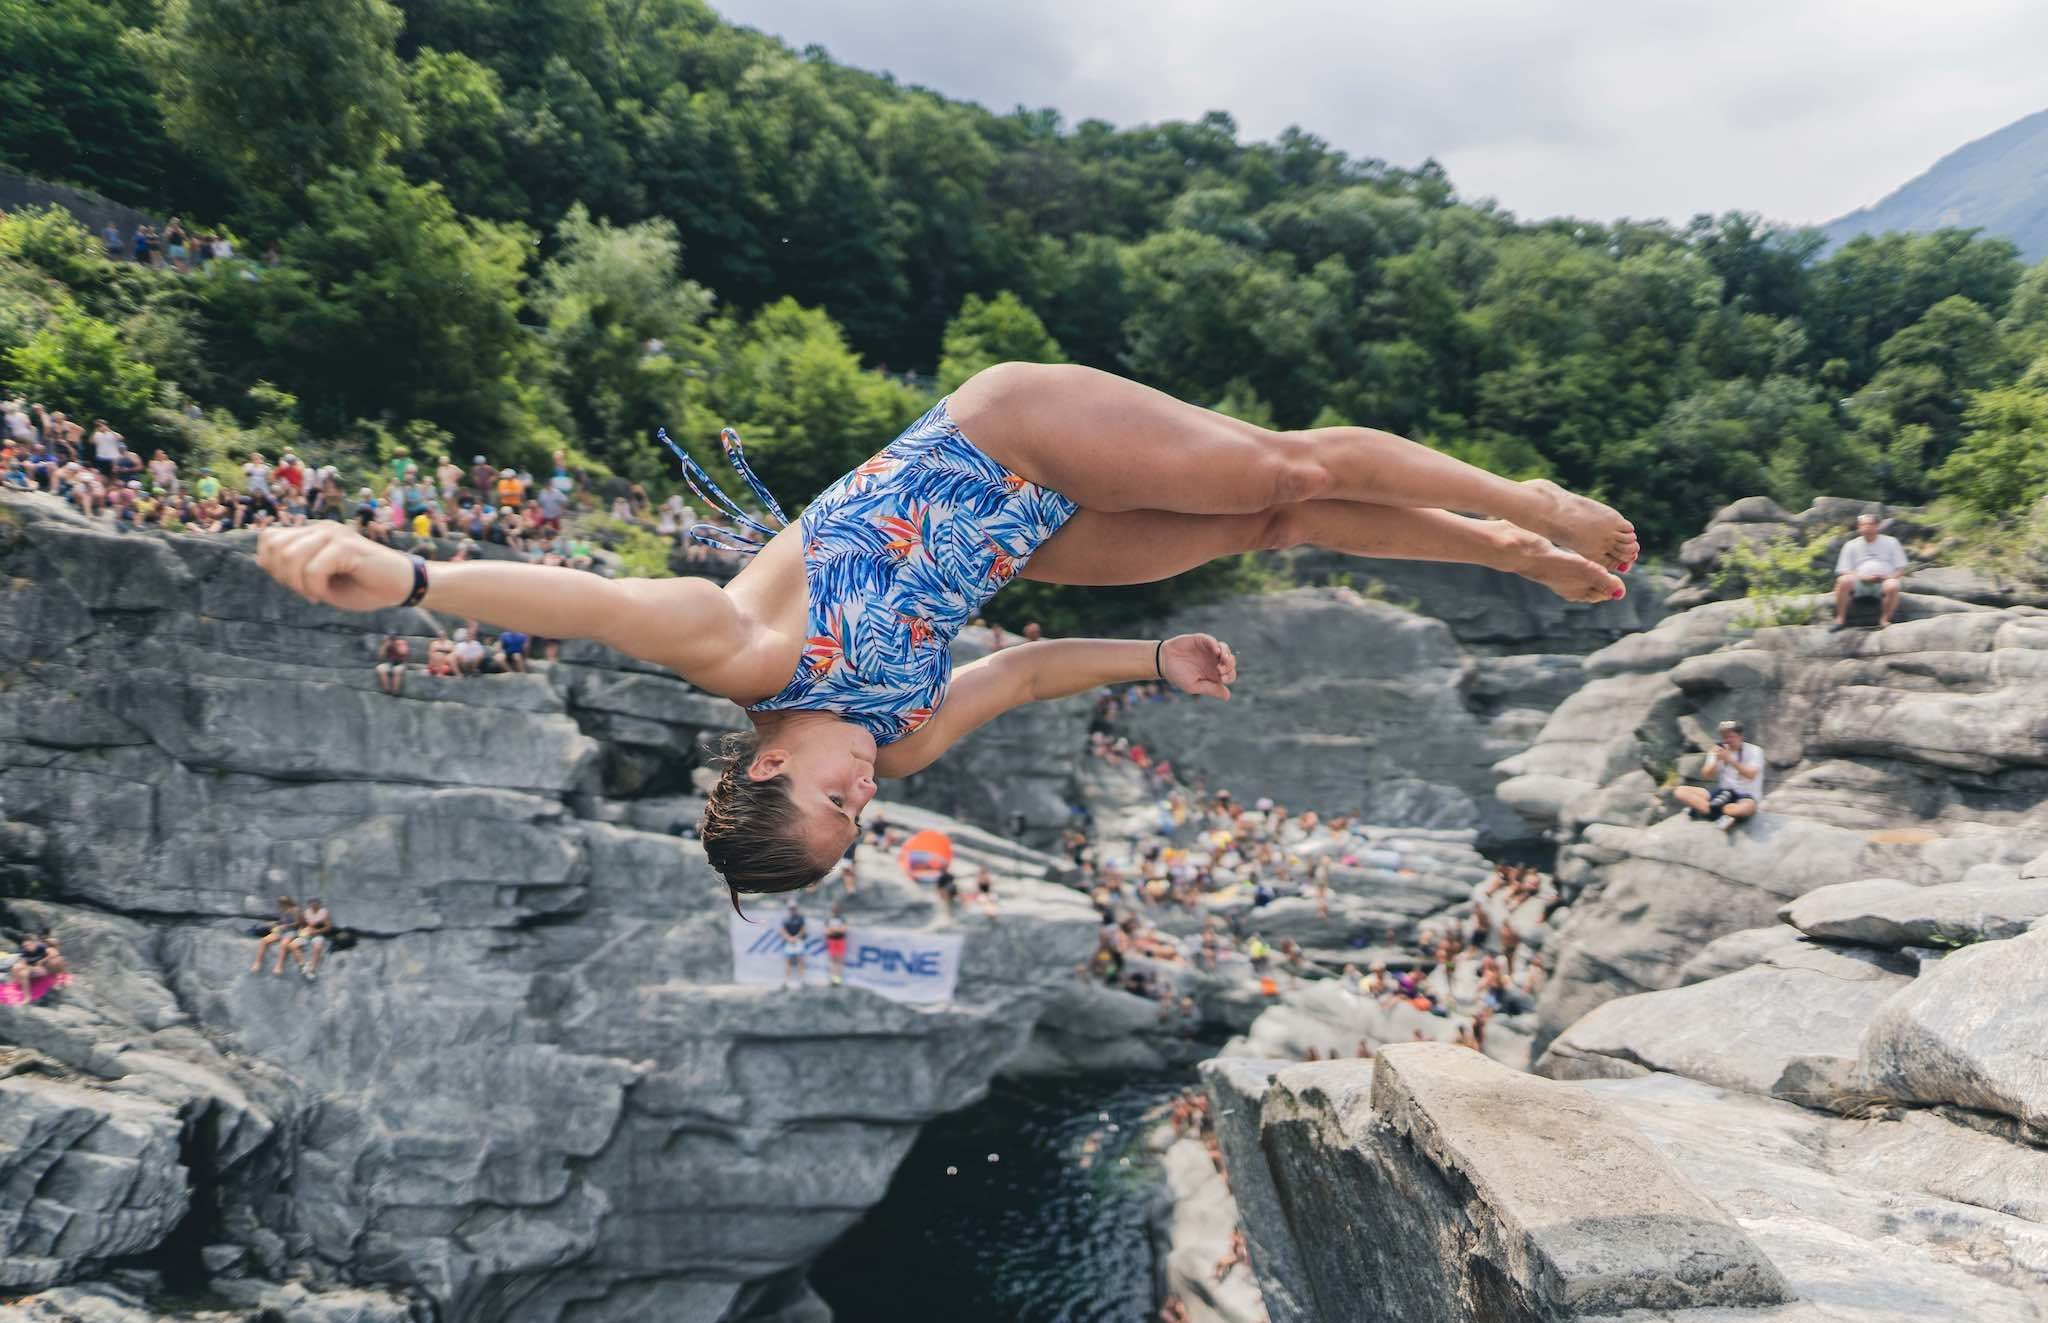 International Cliff Diving Championship 2020